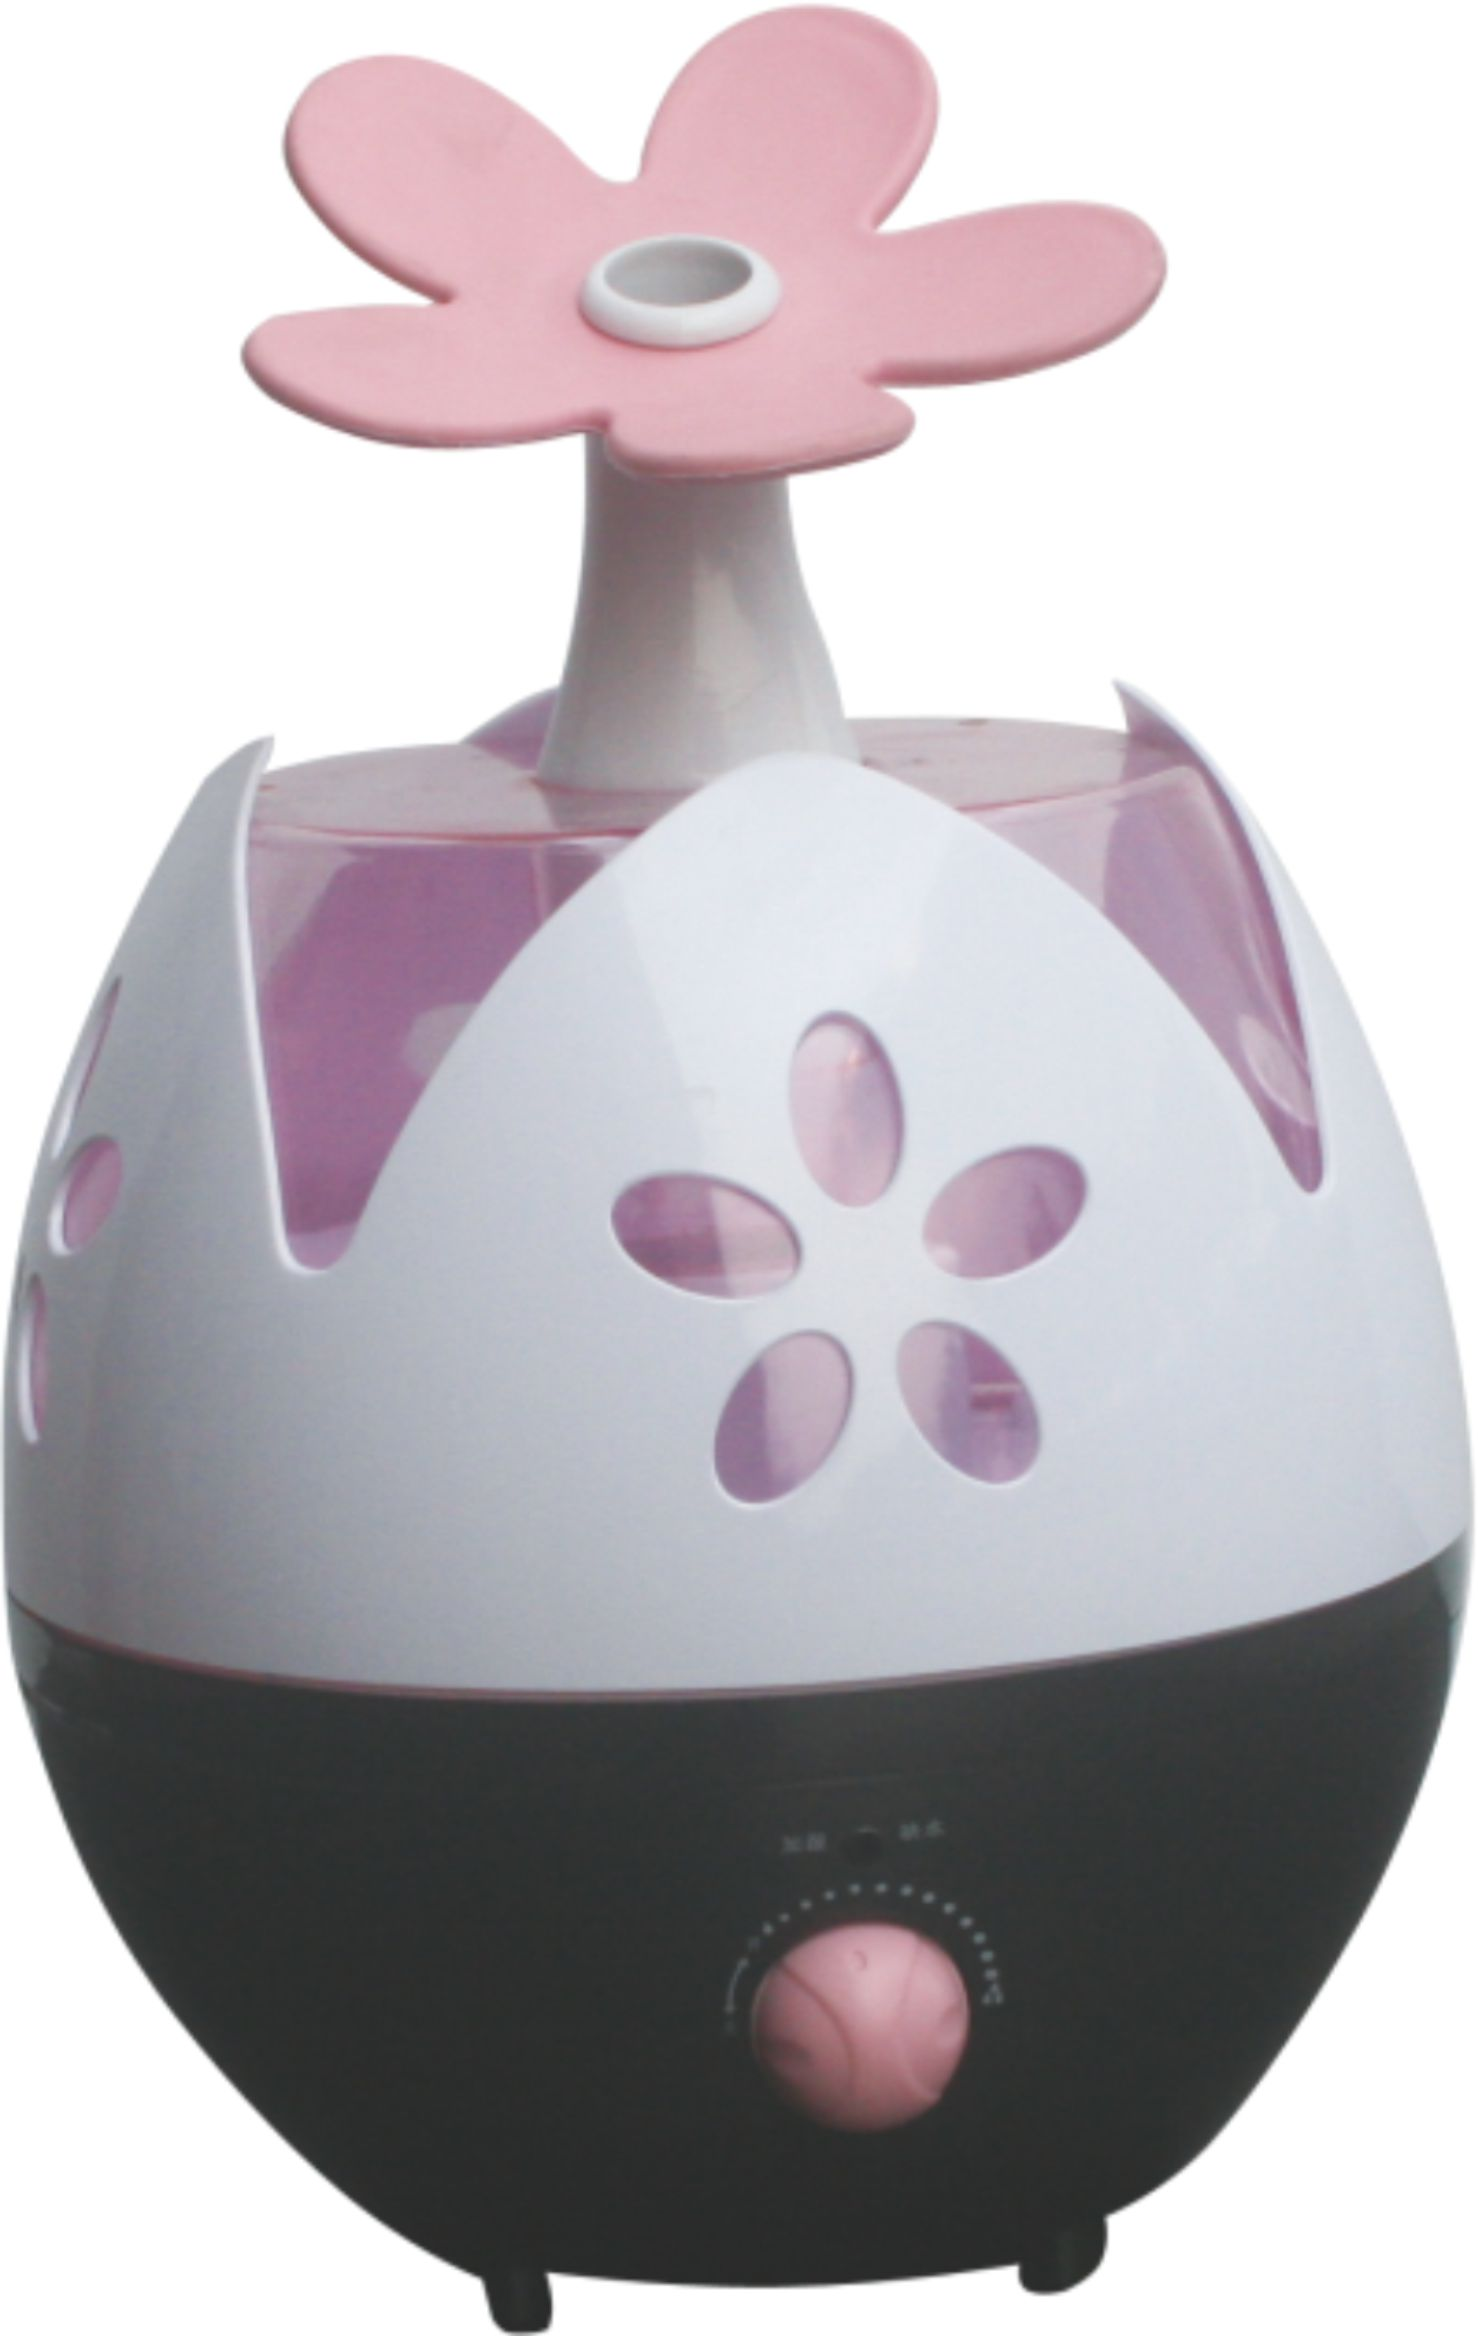 4L Capacity Follower Design Home Humidifier